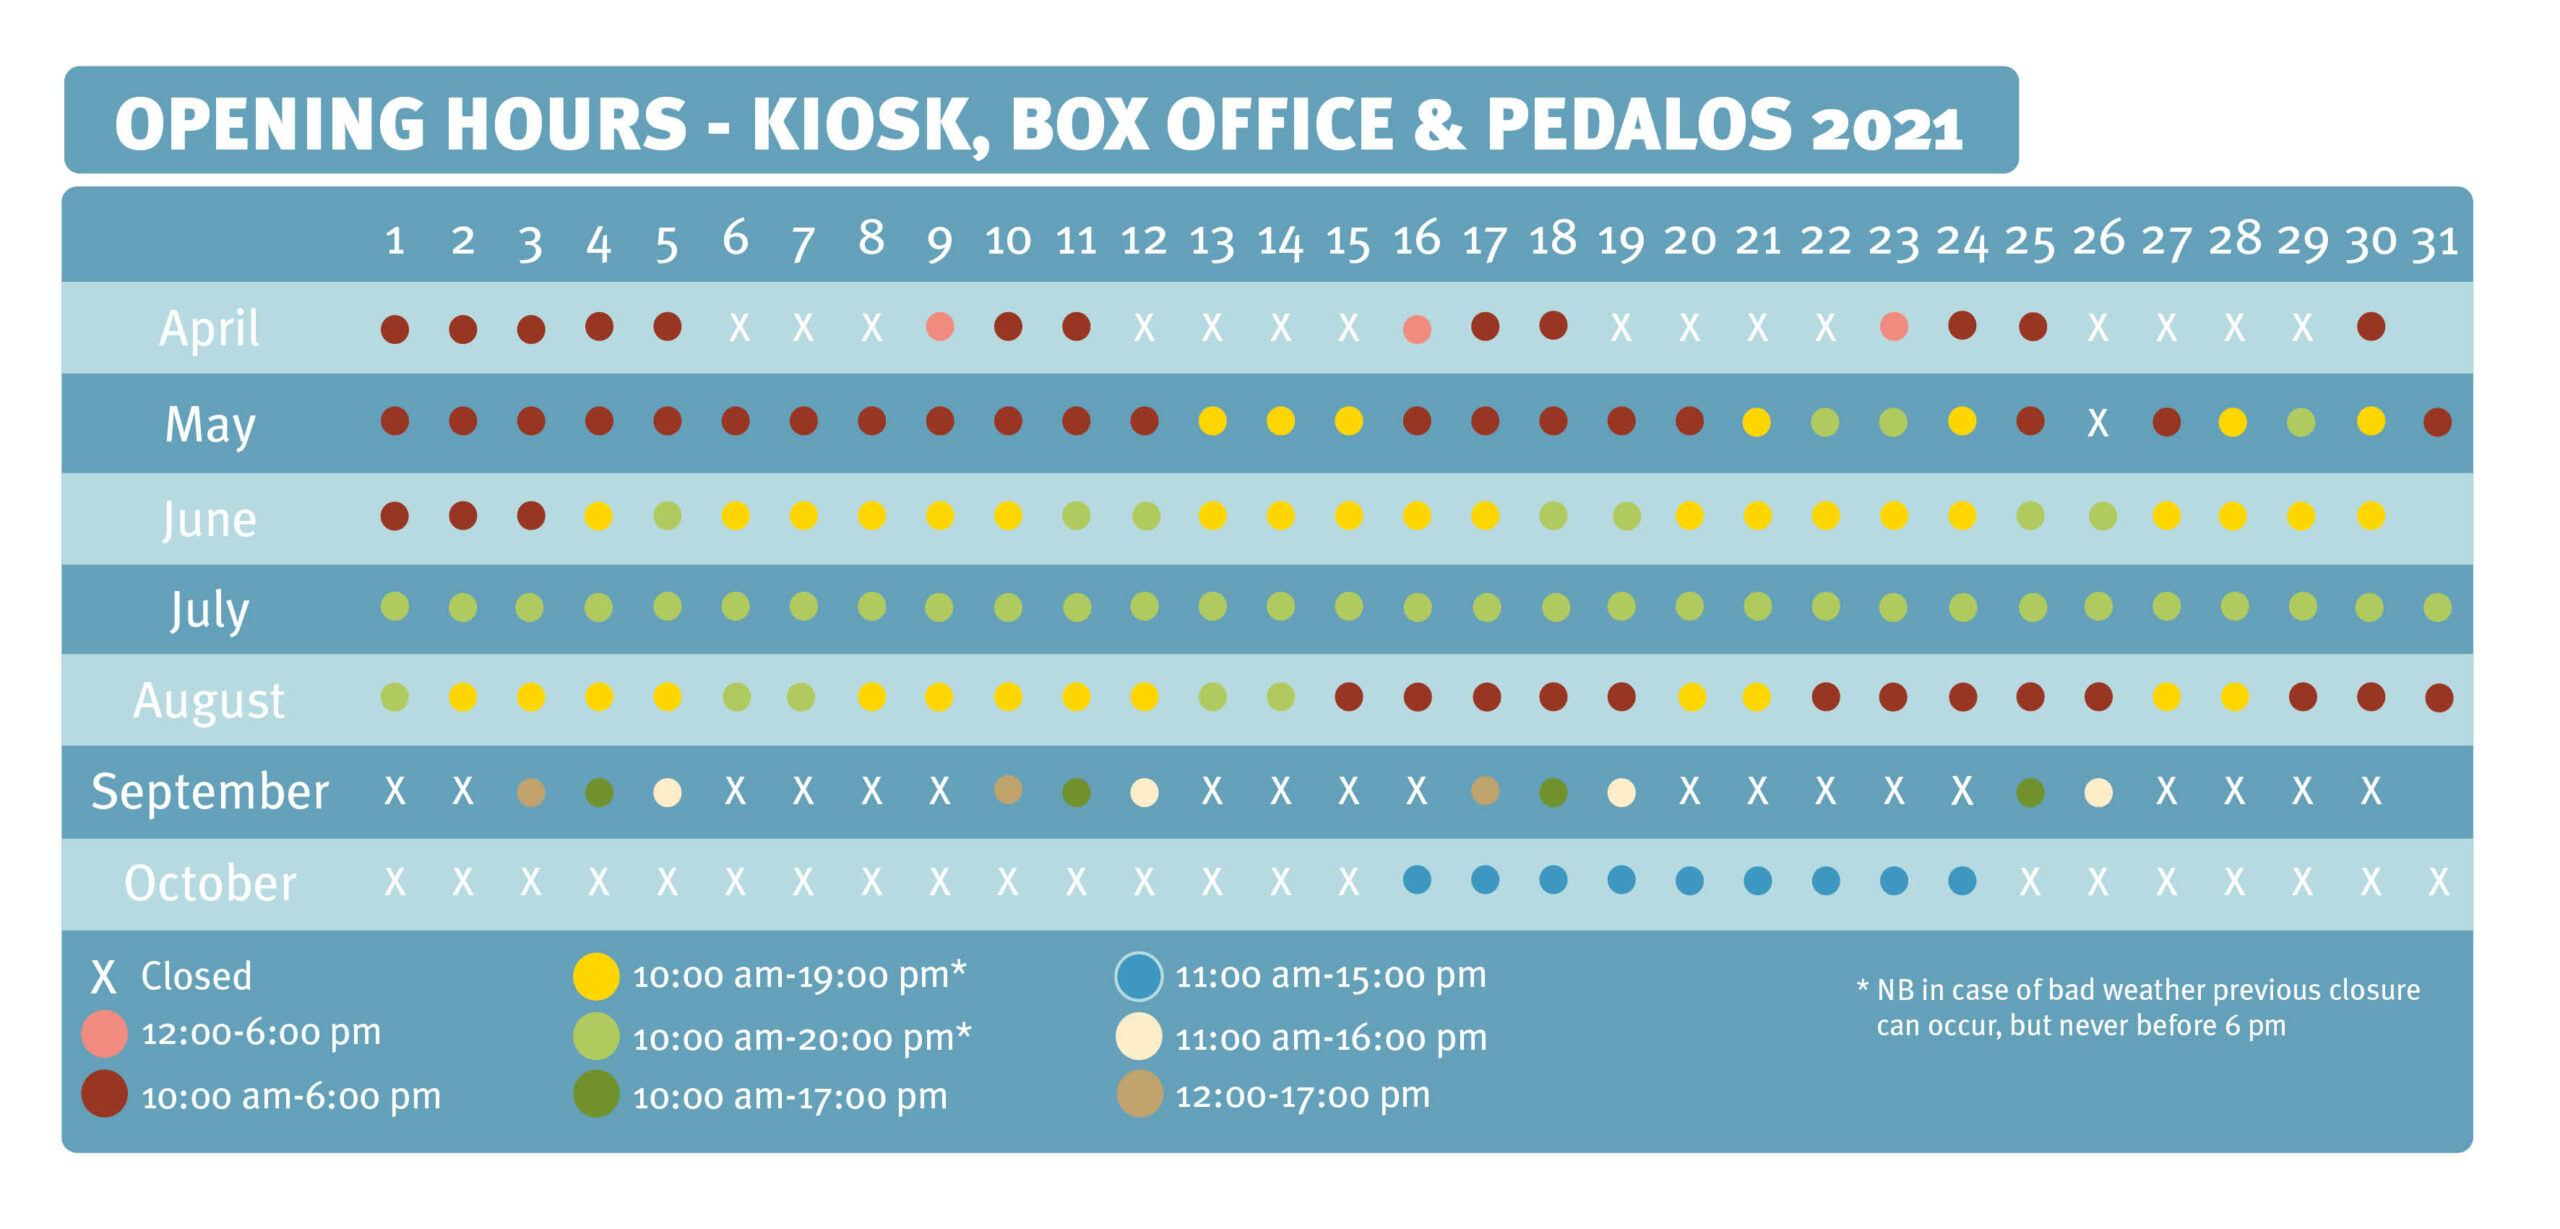 Kiosk, box office and pedalos opening hours